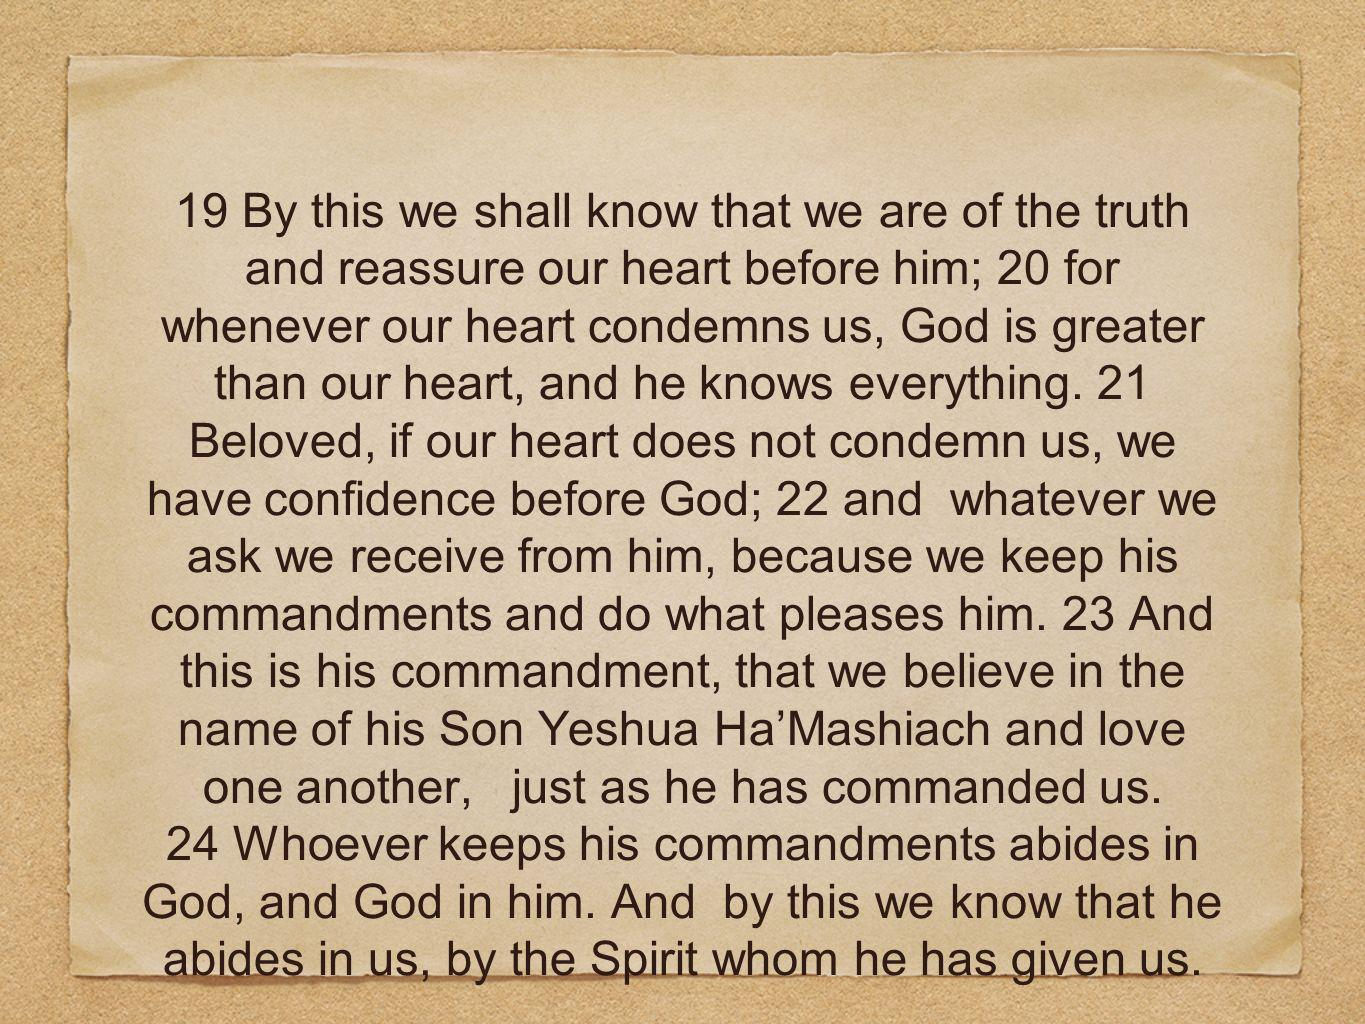 19 By this we shall know that we are of the truth and reassure our heart before him; 20 for whenever our heart condemns us, God is greater than our heart, and he knows everything.